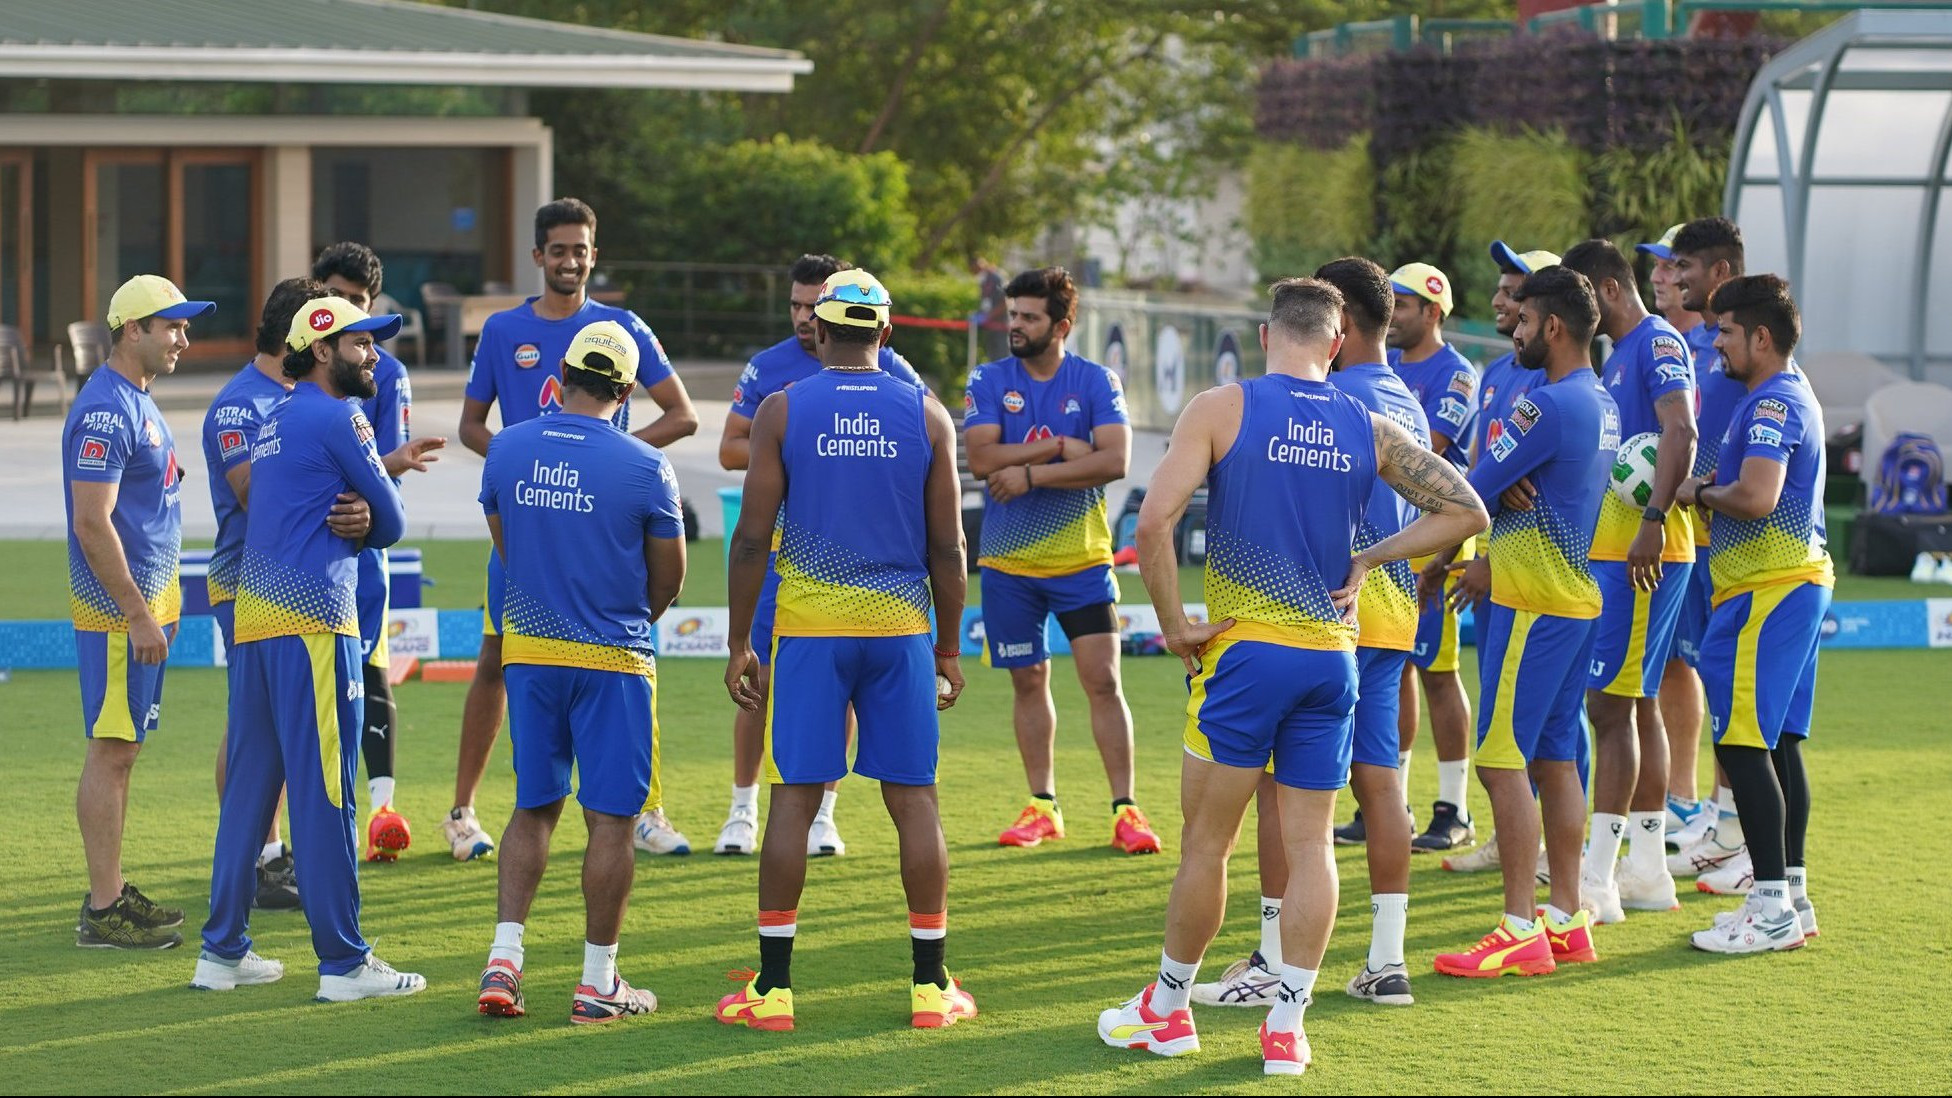 IPL 2021: One personnel in CSK contingent tests positive for COVID-19, says report